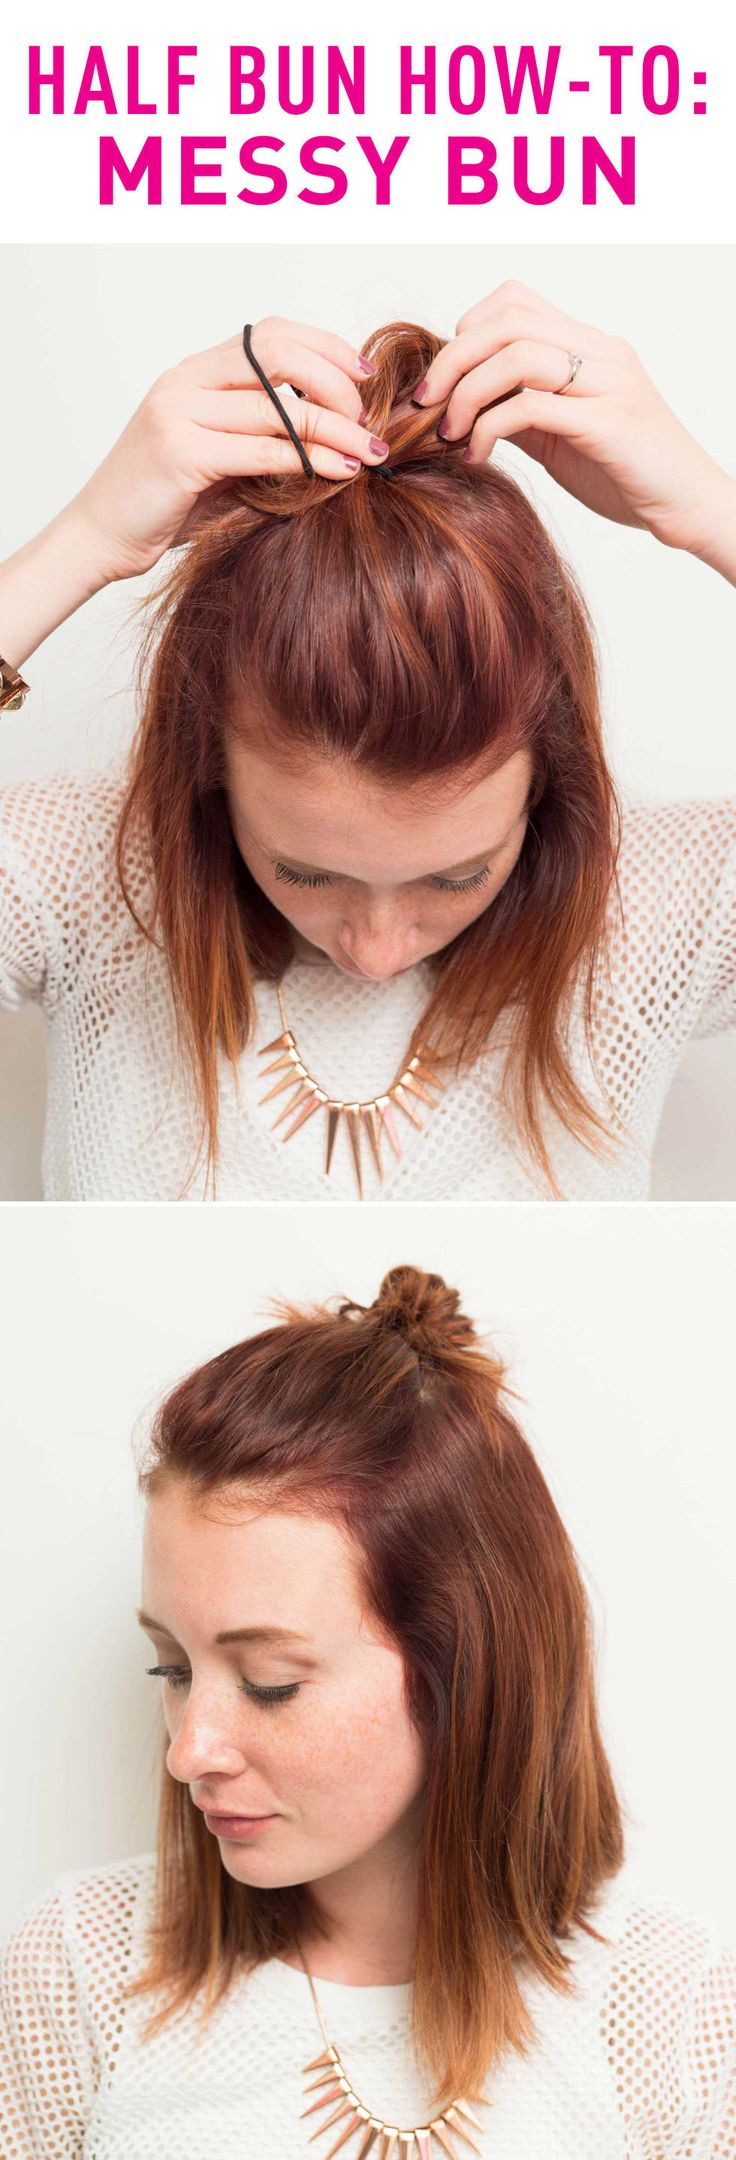 Few hairstyles can pass as practical and cute like a bun can. Looking to switch up your ordinary top knot? Try the half bun. Celebs have taken to the trend and proven that the look is just as perfect for daytime as it is for a red carpet event. You can make a half bun work for any occasion and any hair type or length.